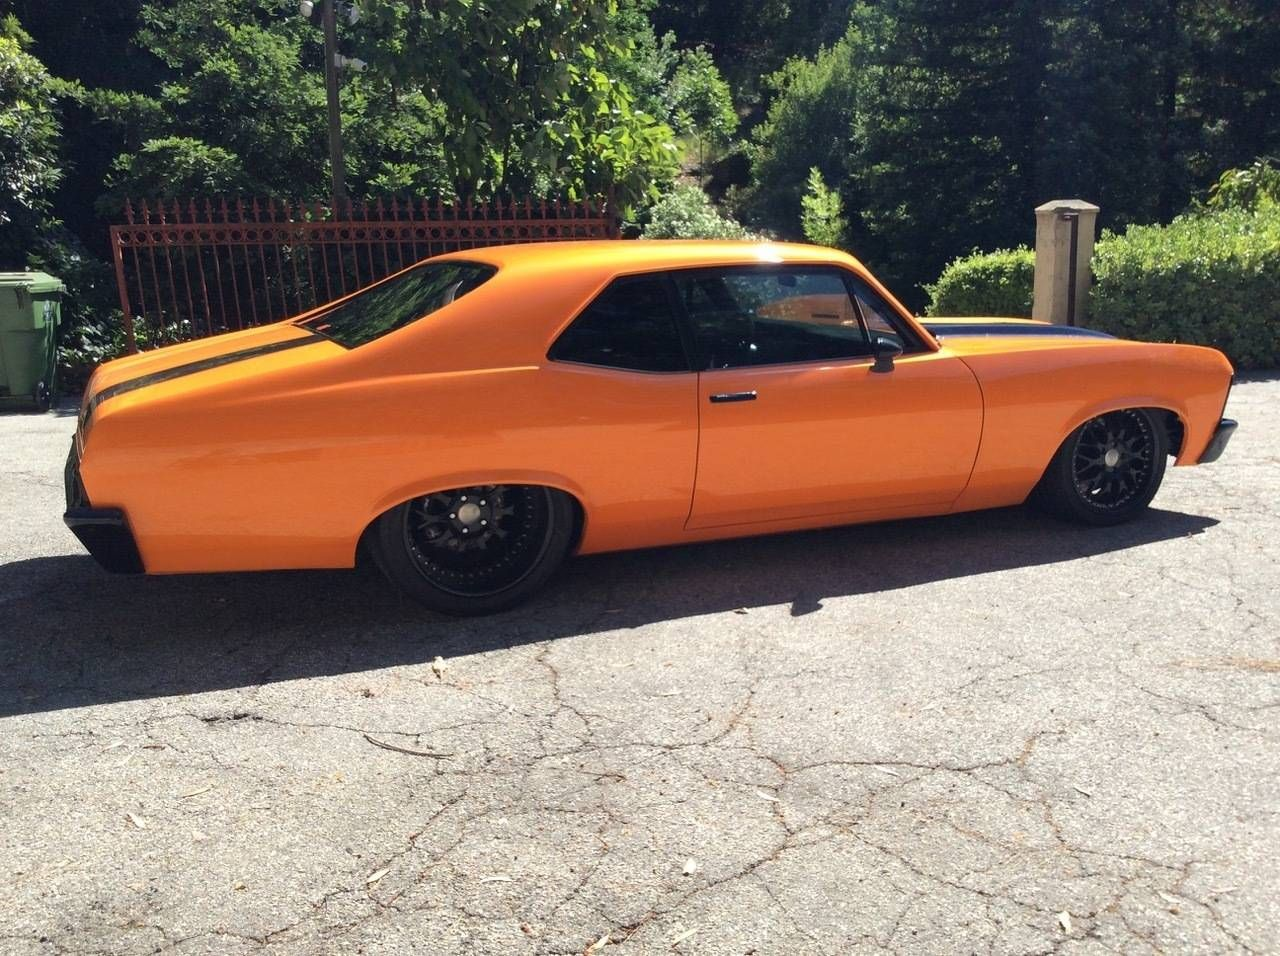 1970 Chevy Nova Currently Owned By Eddie Van Halen For Sale Allcollectorcars Com In 2020 Holden Muscle Cars Chevy Nova Chevy Models